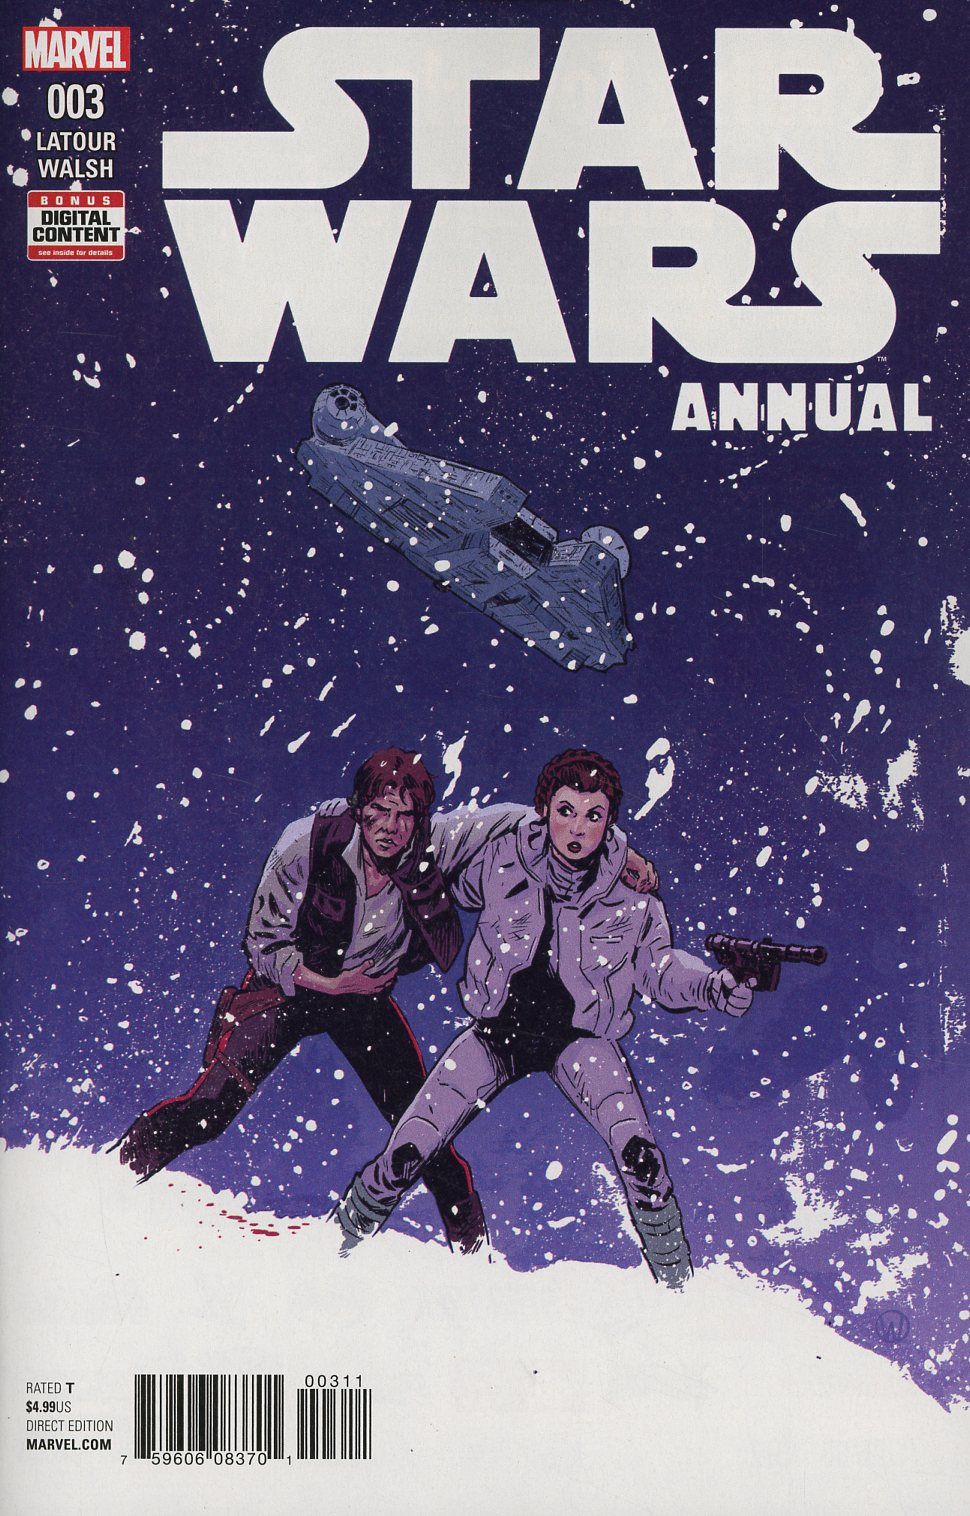 Star Wars Vol 4 Annual #3 Cover A Regular Michael Walsh Cover